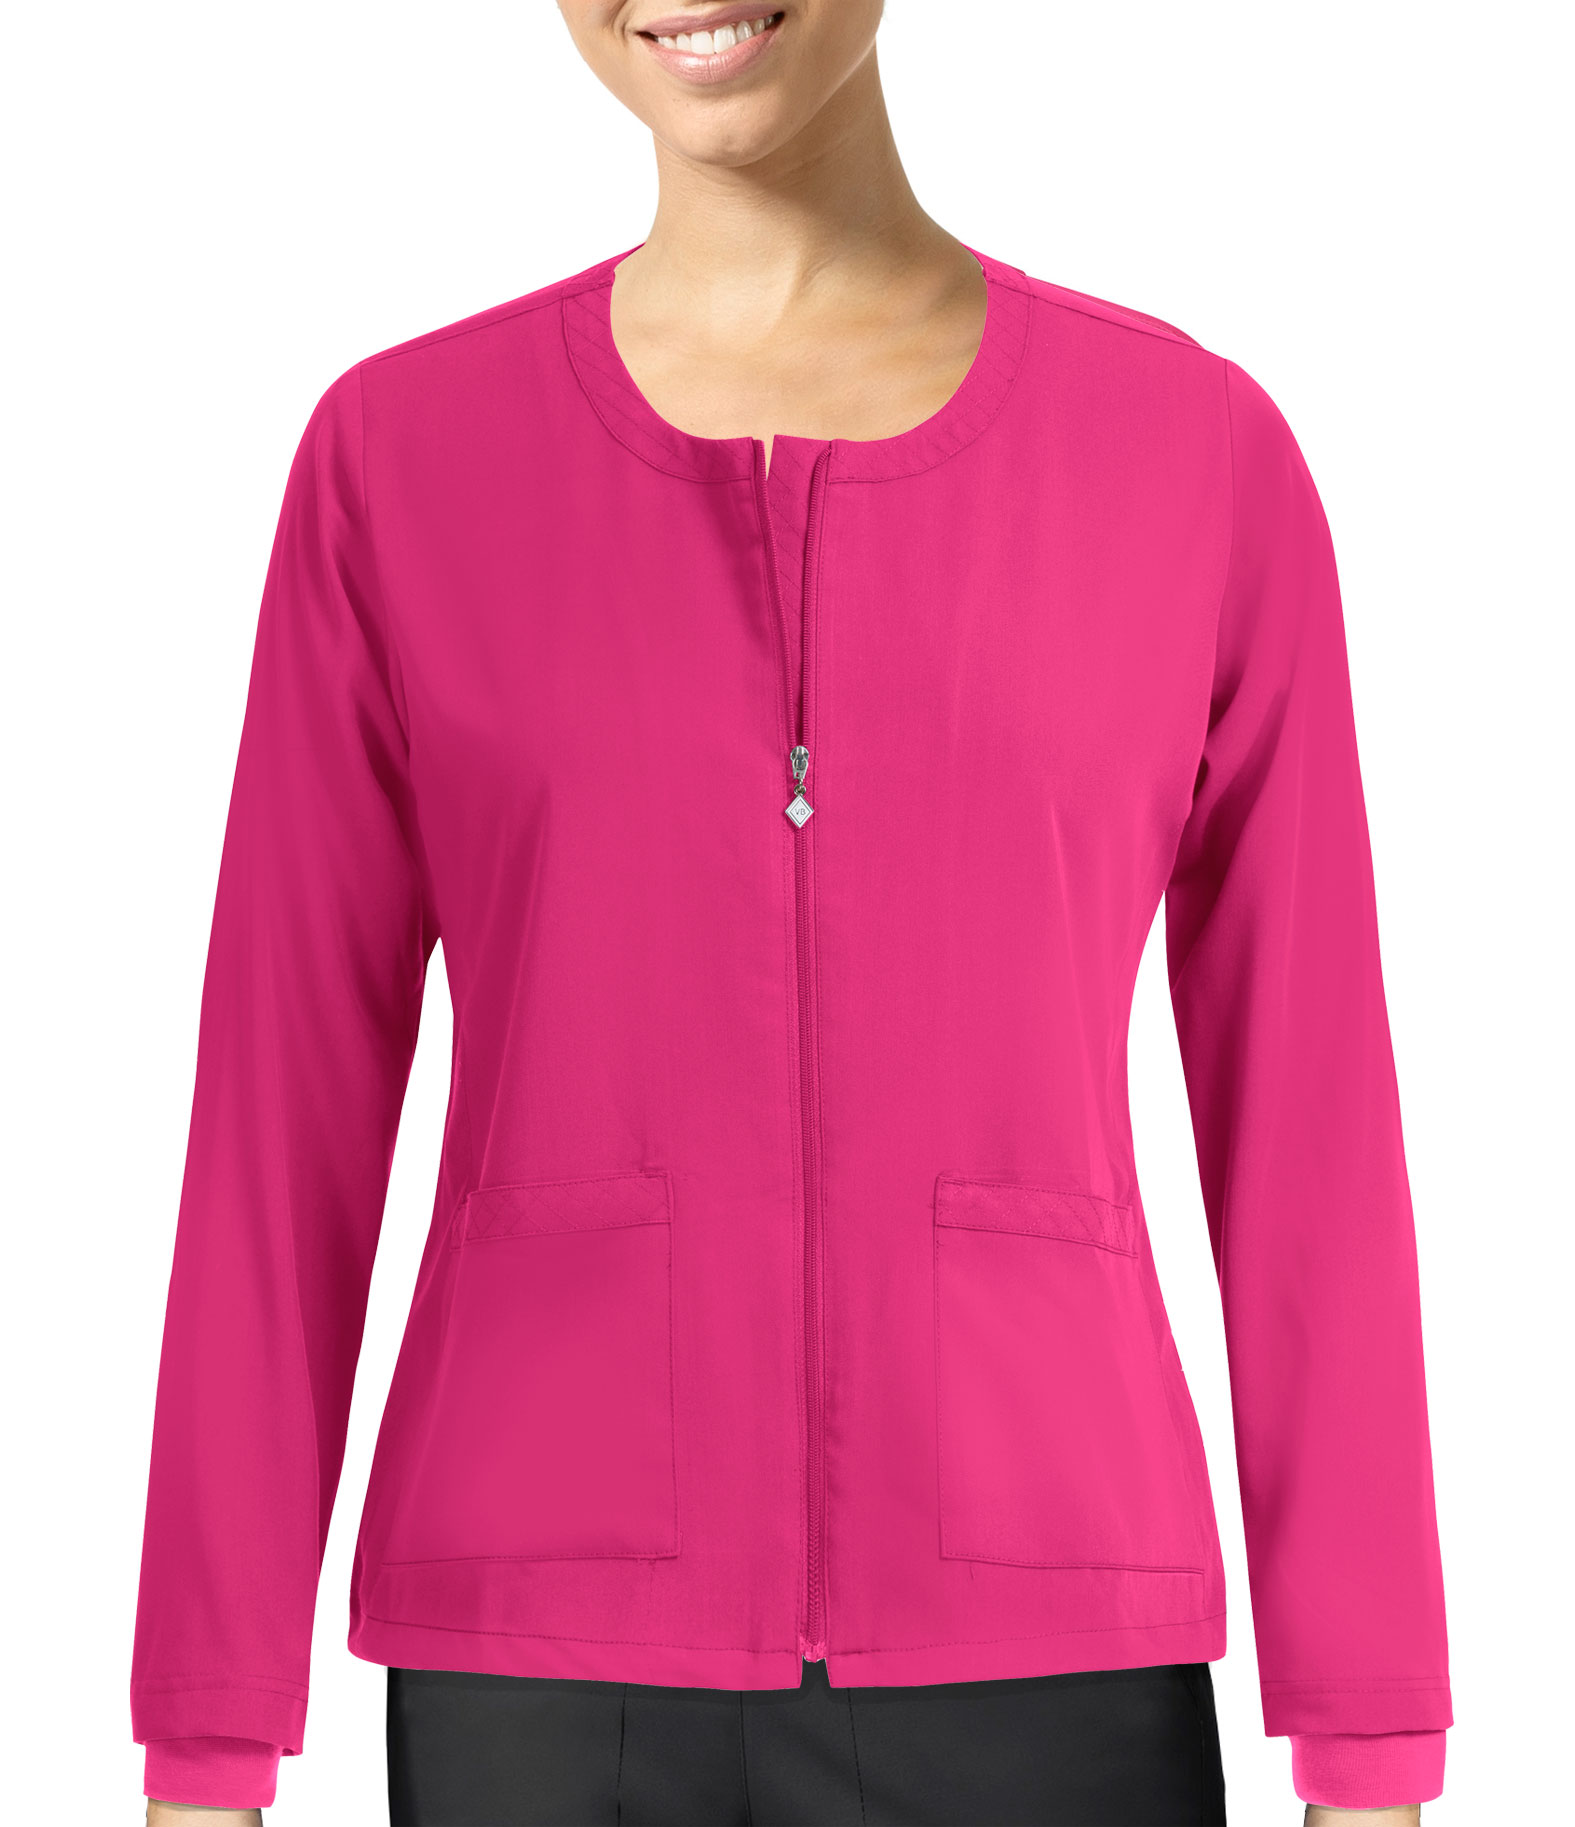 Vera Bradley Ladies Julia Warm Up Jacket - Halo Collection